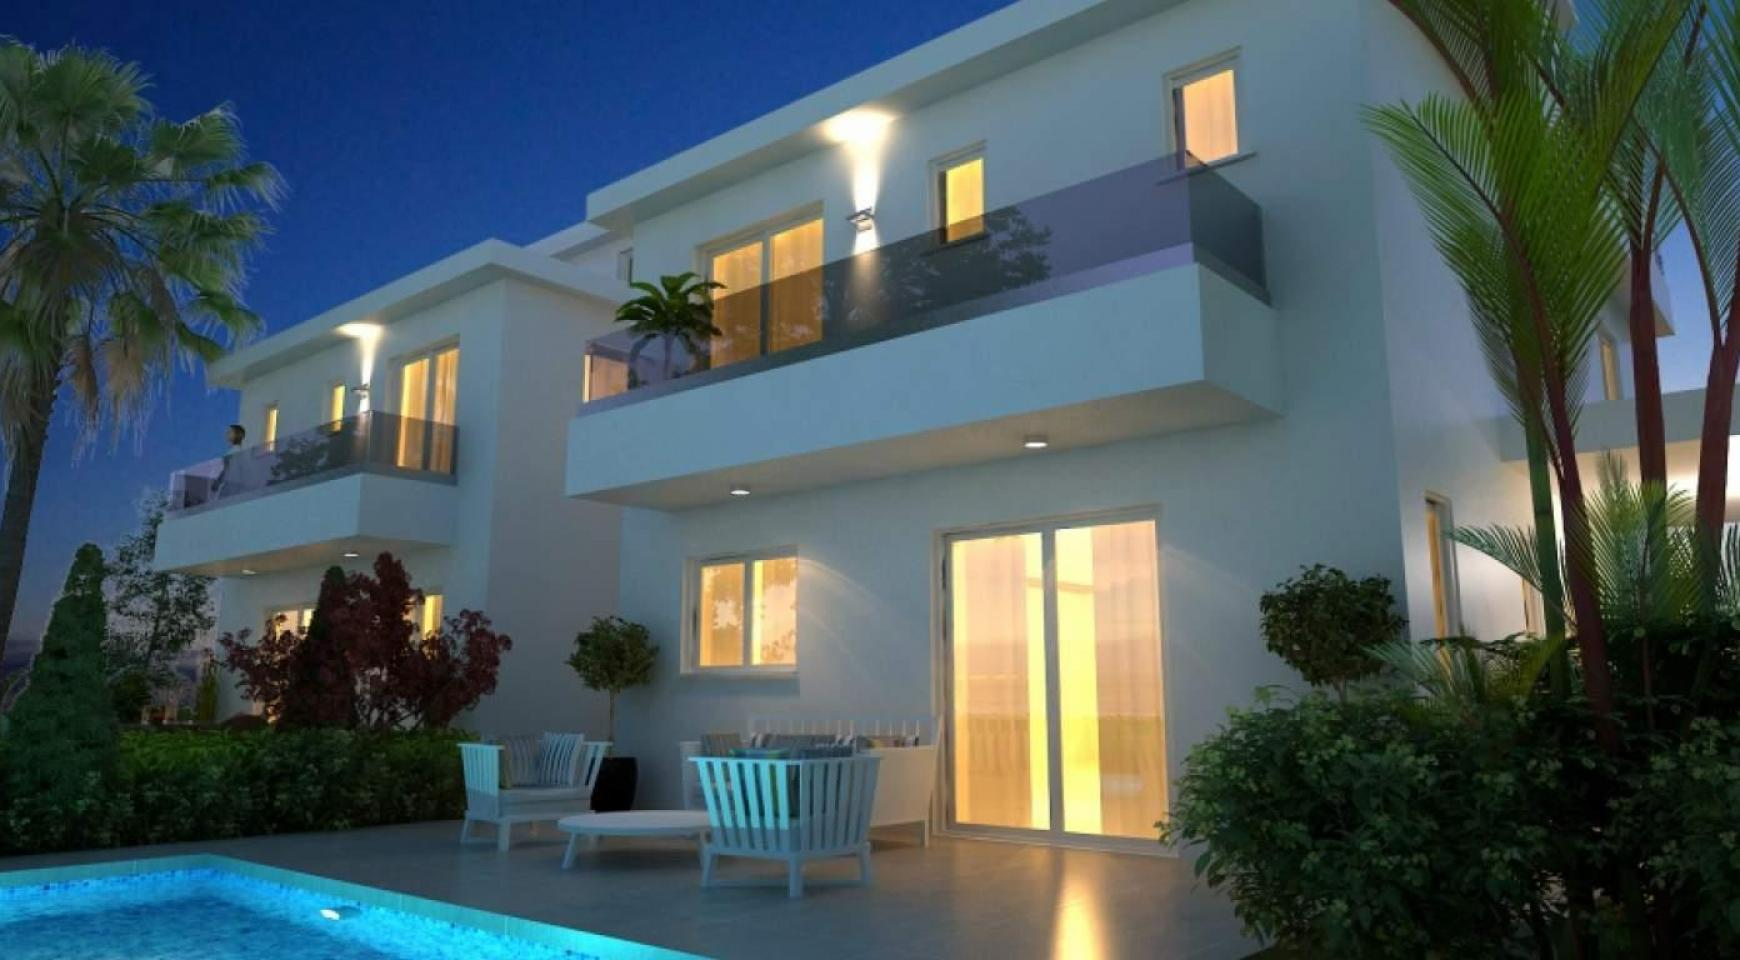 4 Bedroom House in Leivadia Area - 2